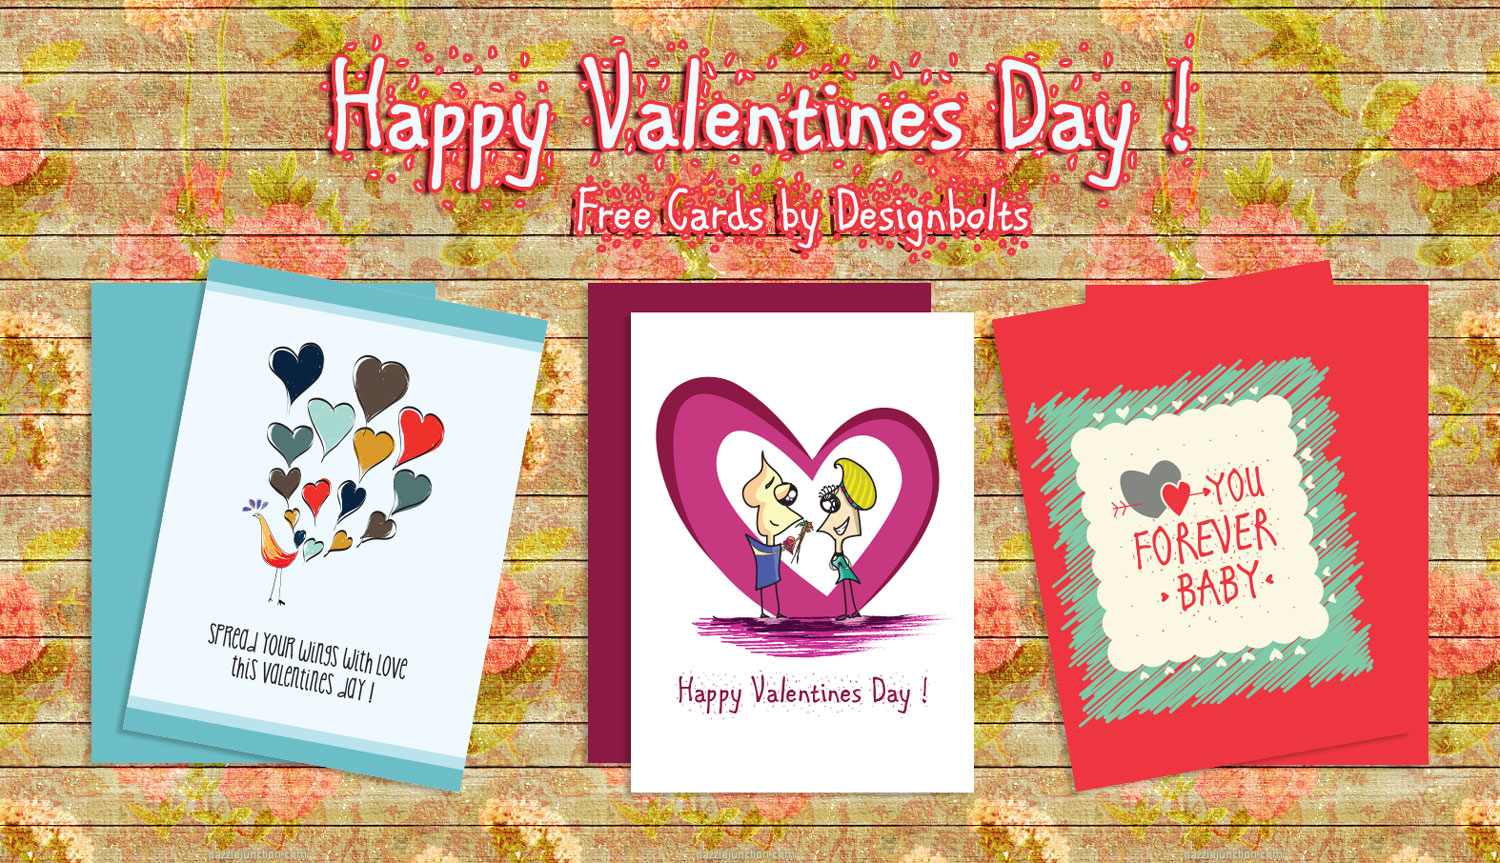 3 Free Happy Valentines Day Card Designs Vector Illustrations – Happy Valentines Day 2015 Cards